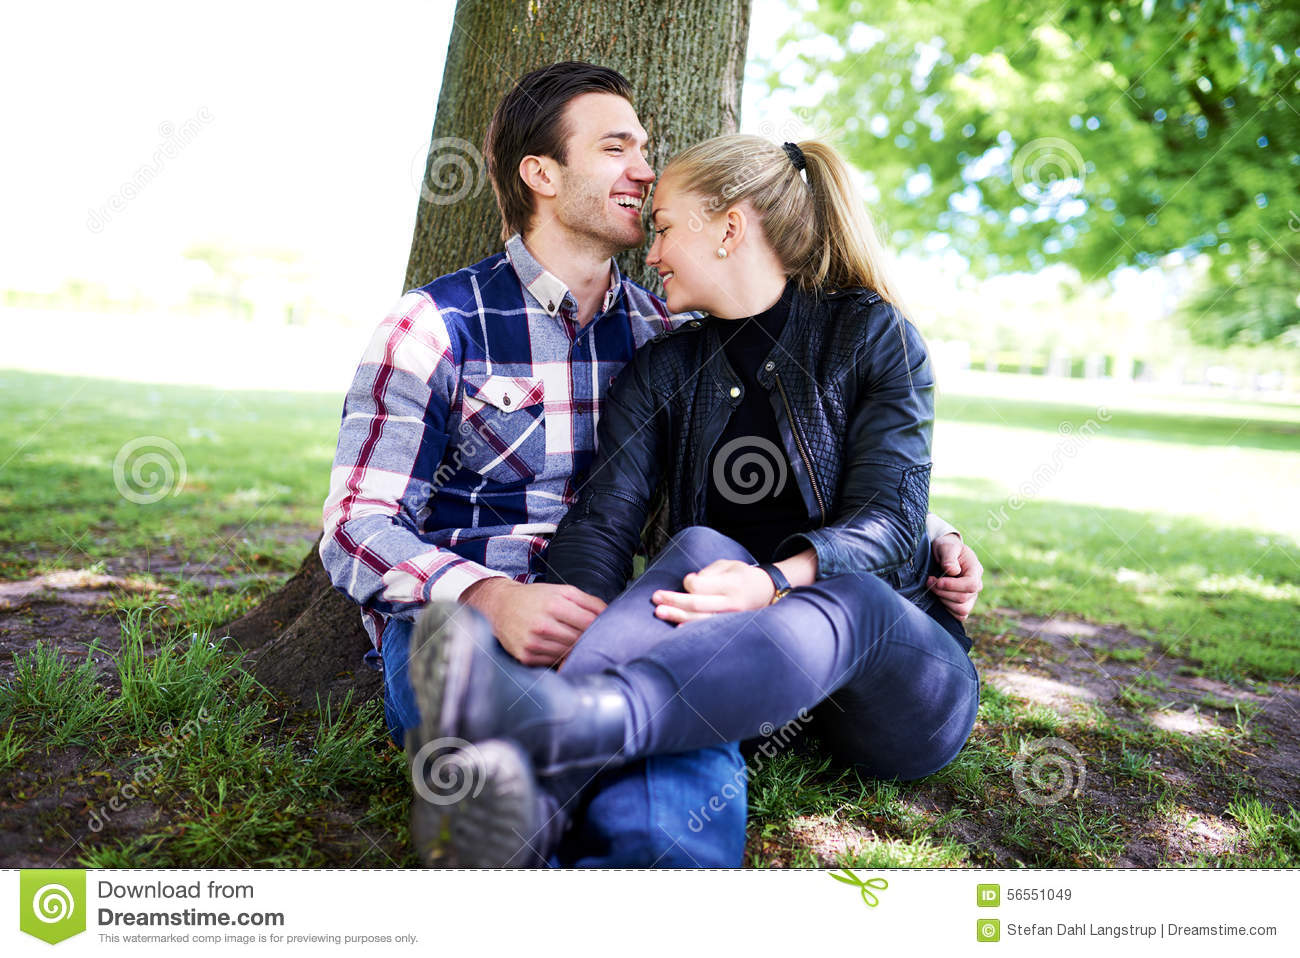 Romantic young couple enjoying an intimate moment